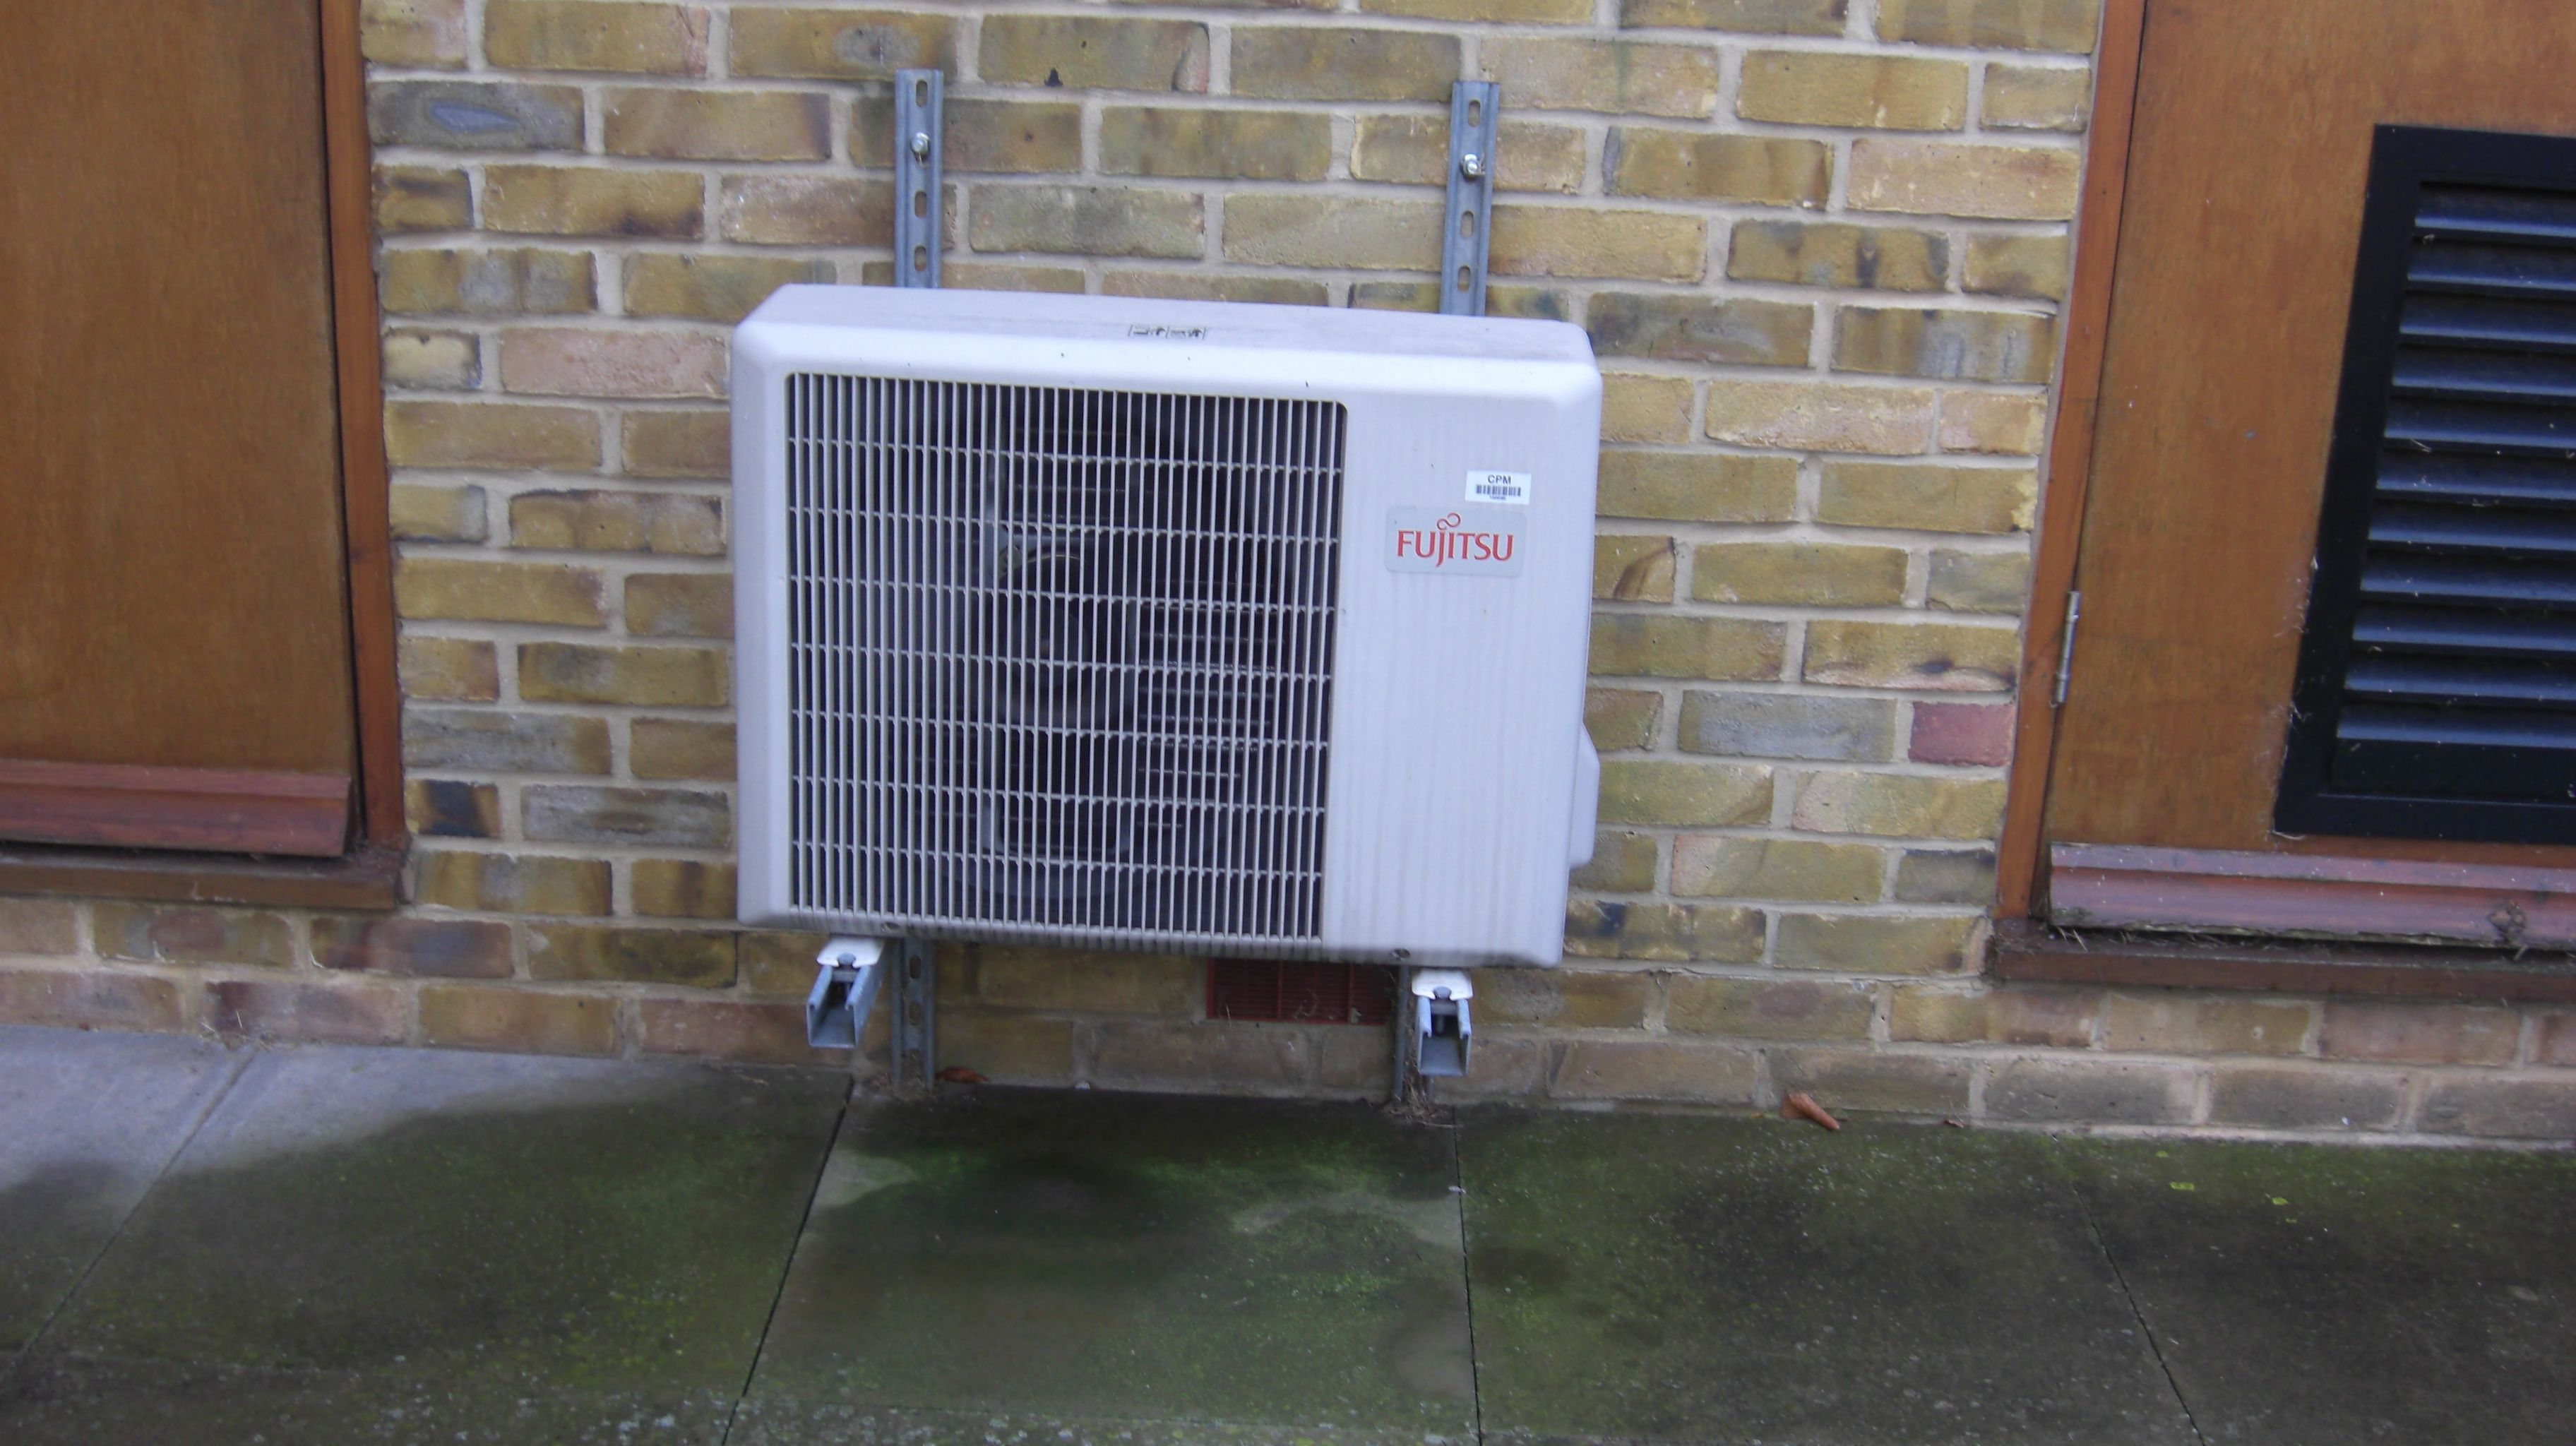 Air conditioning condensing unit looks clean from the